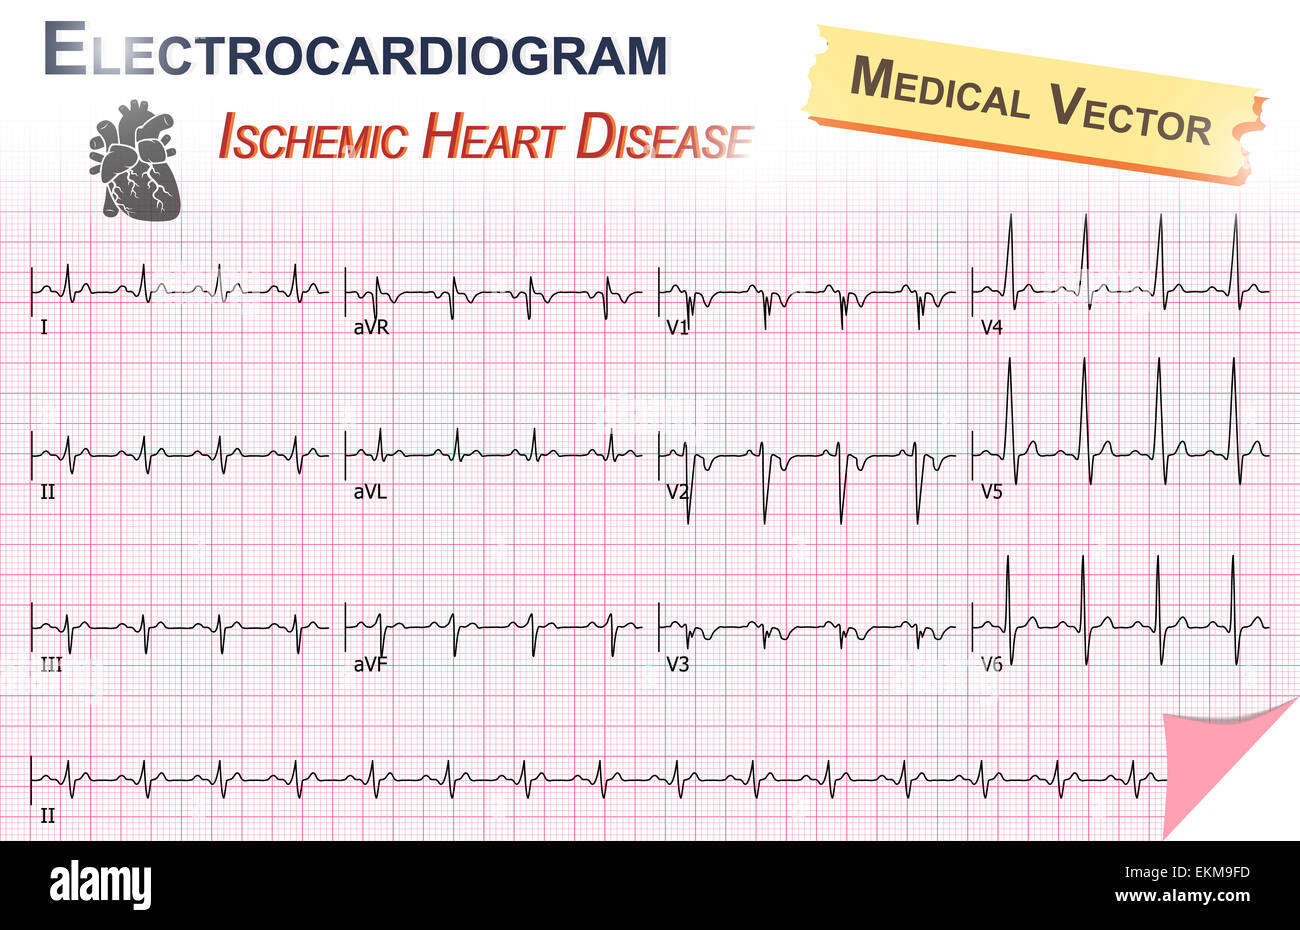 Electrocardiogram Ecg Ekg Of Ischemic Heart Disease Stock